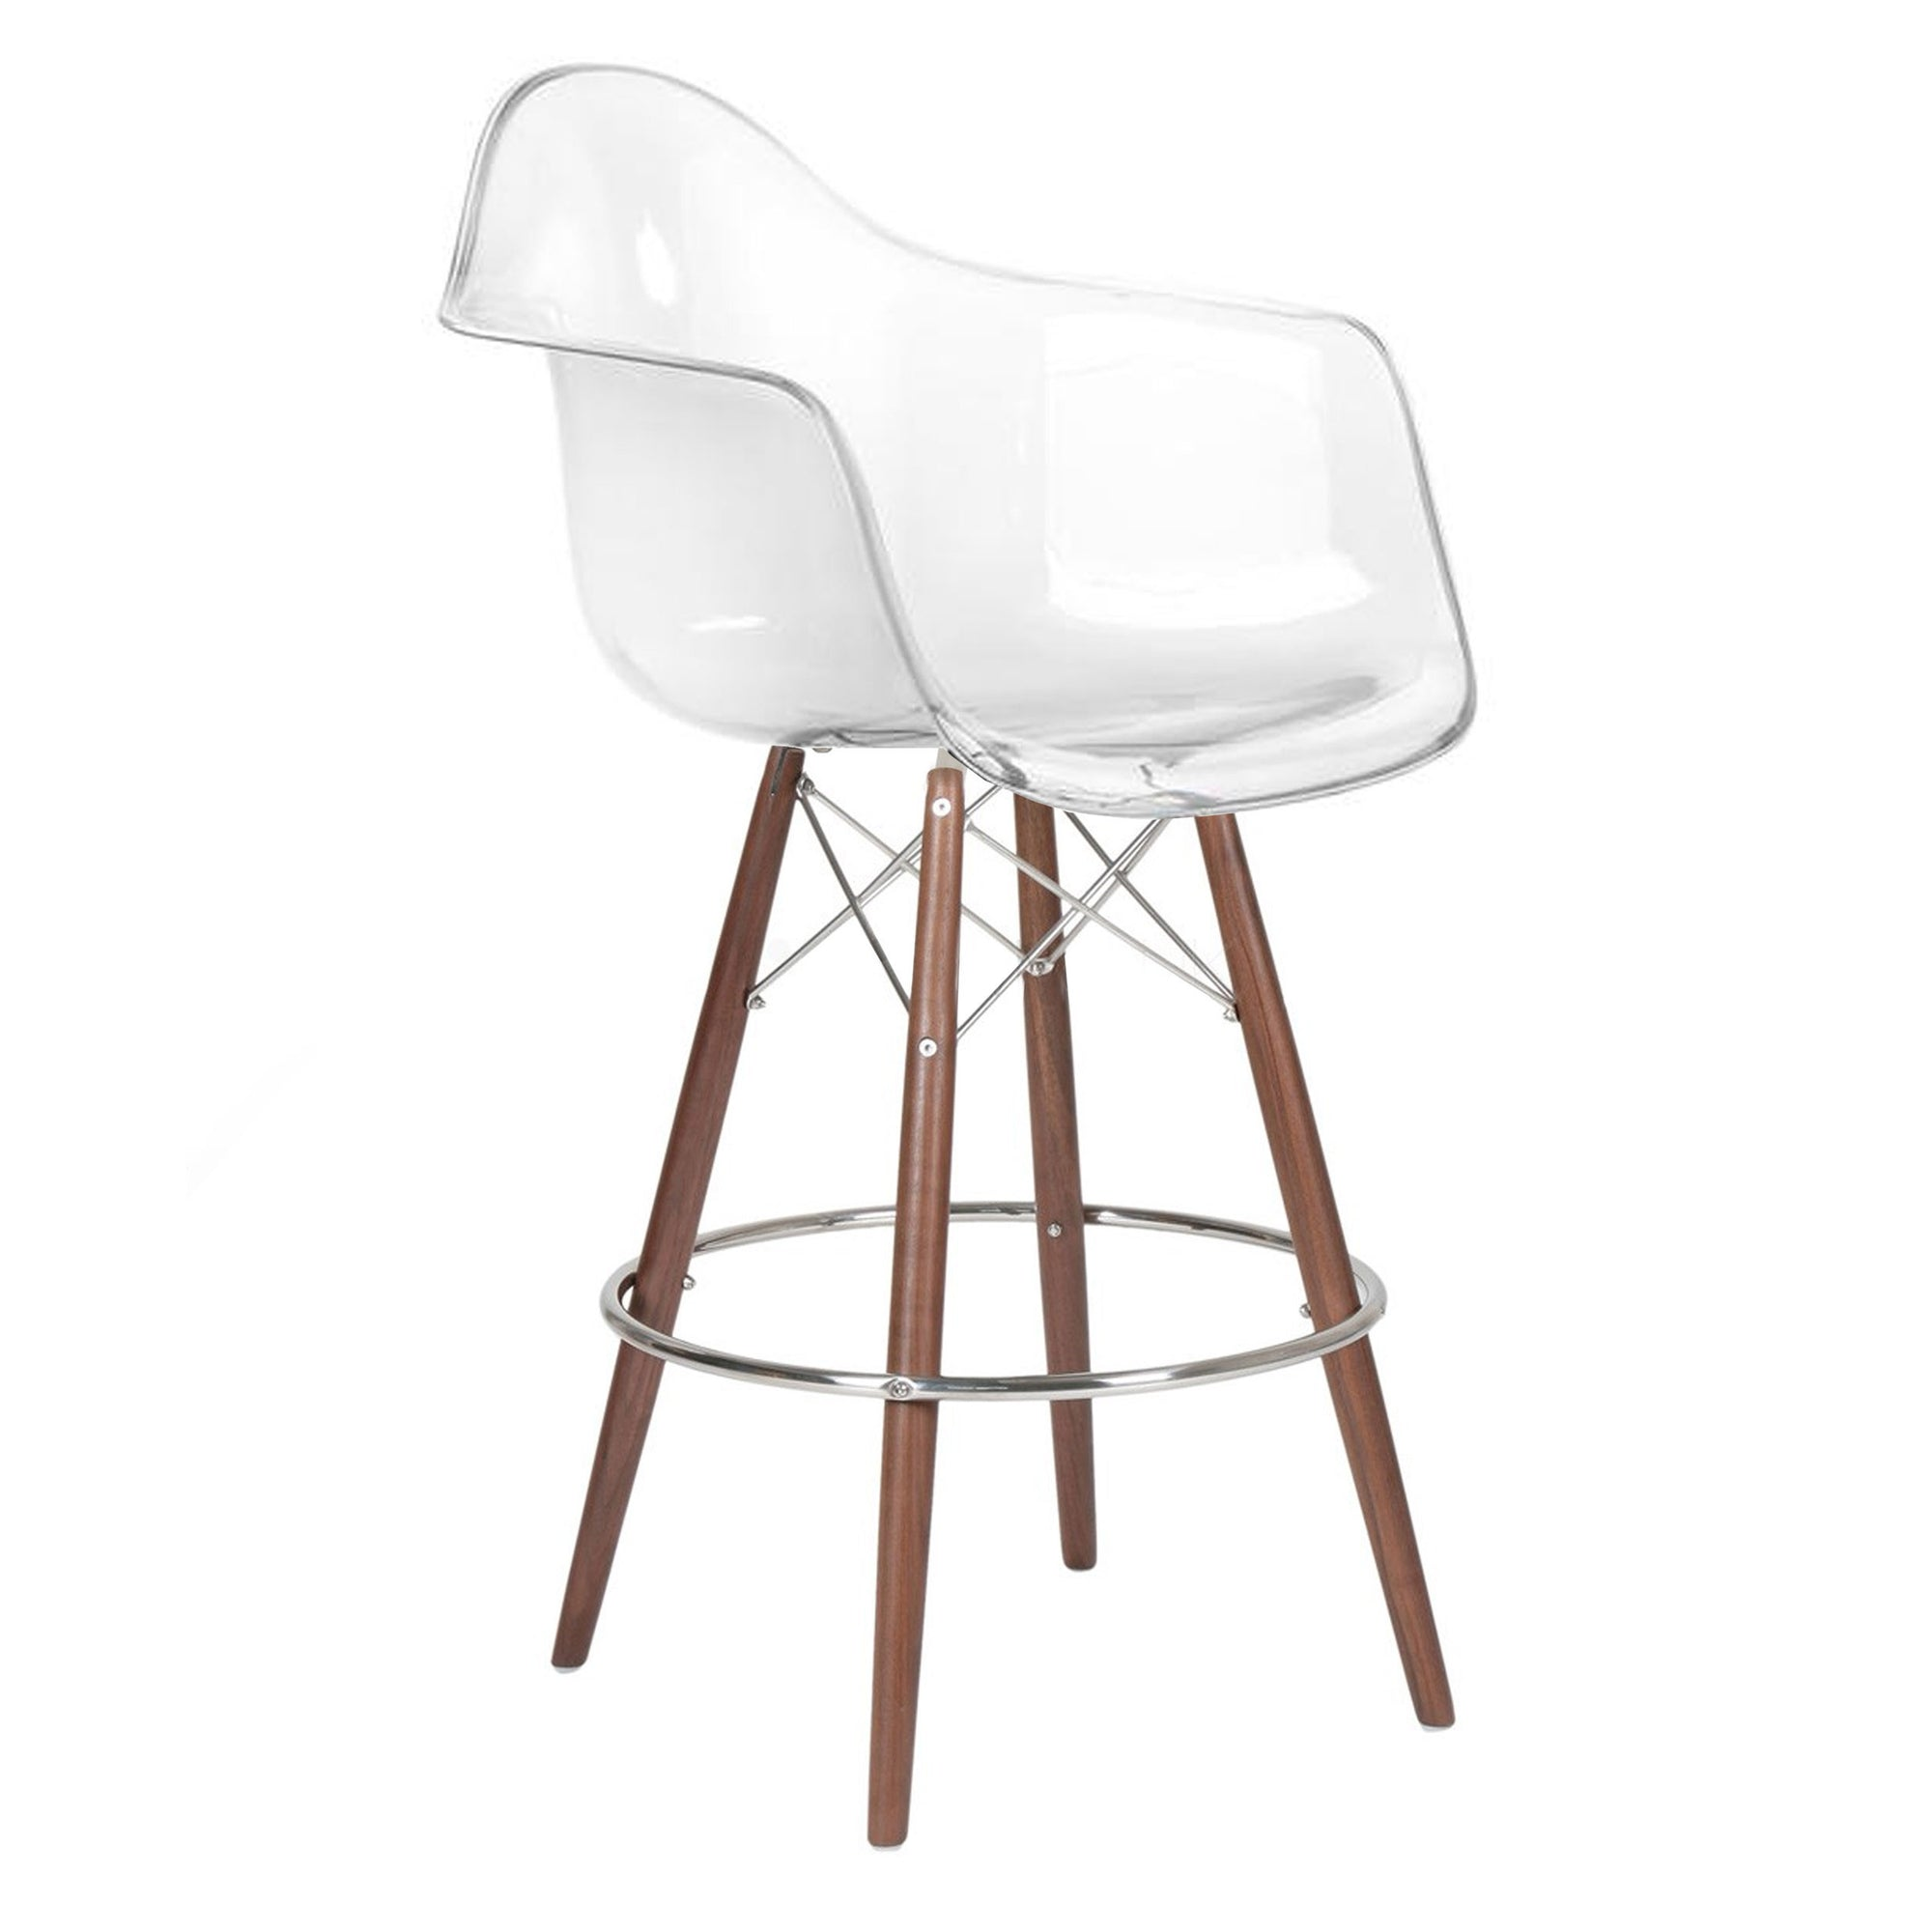 Bar Chair-Acrylic MSB00129CW -  كرسي مرتفع - اكريليك - Shop Online Furniture and Home Decor Store in Dubai, UAE at ebarza